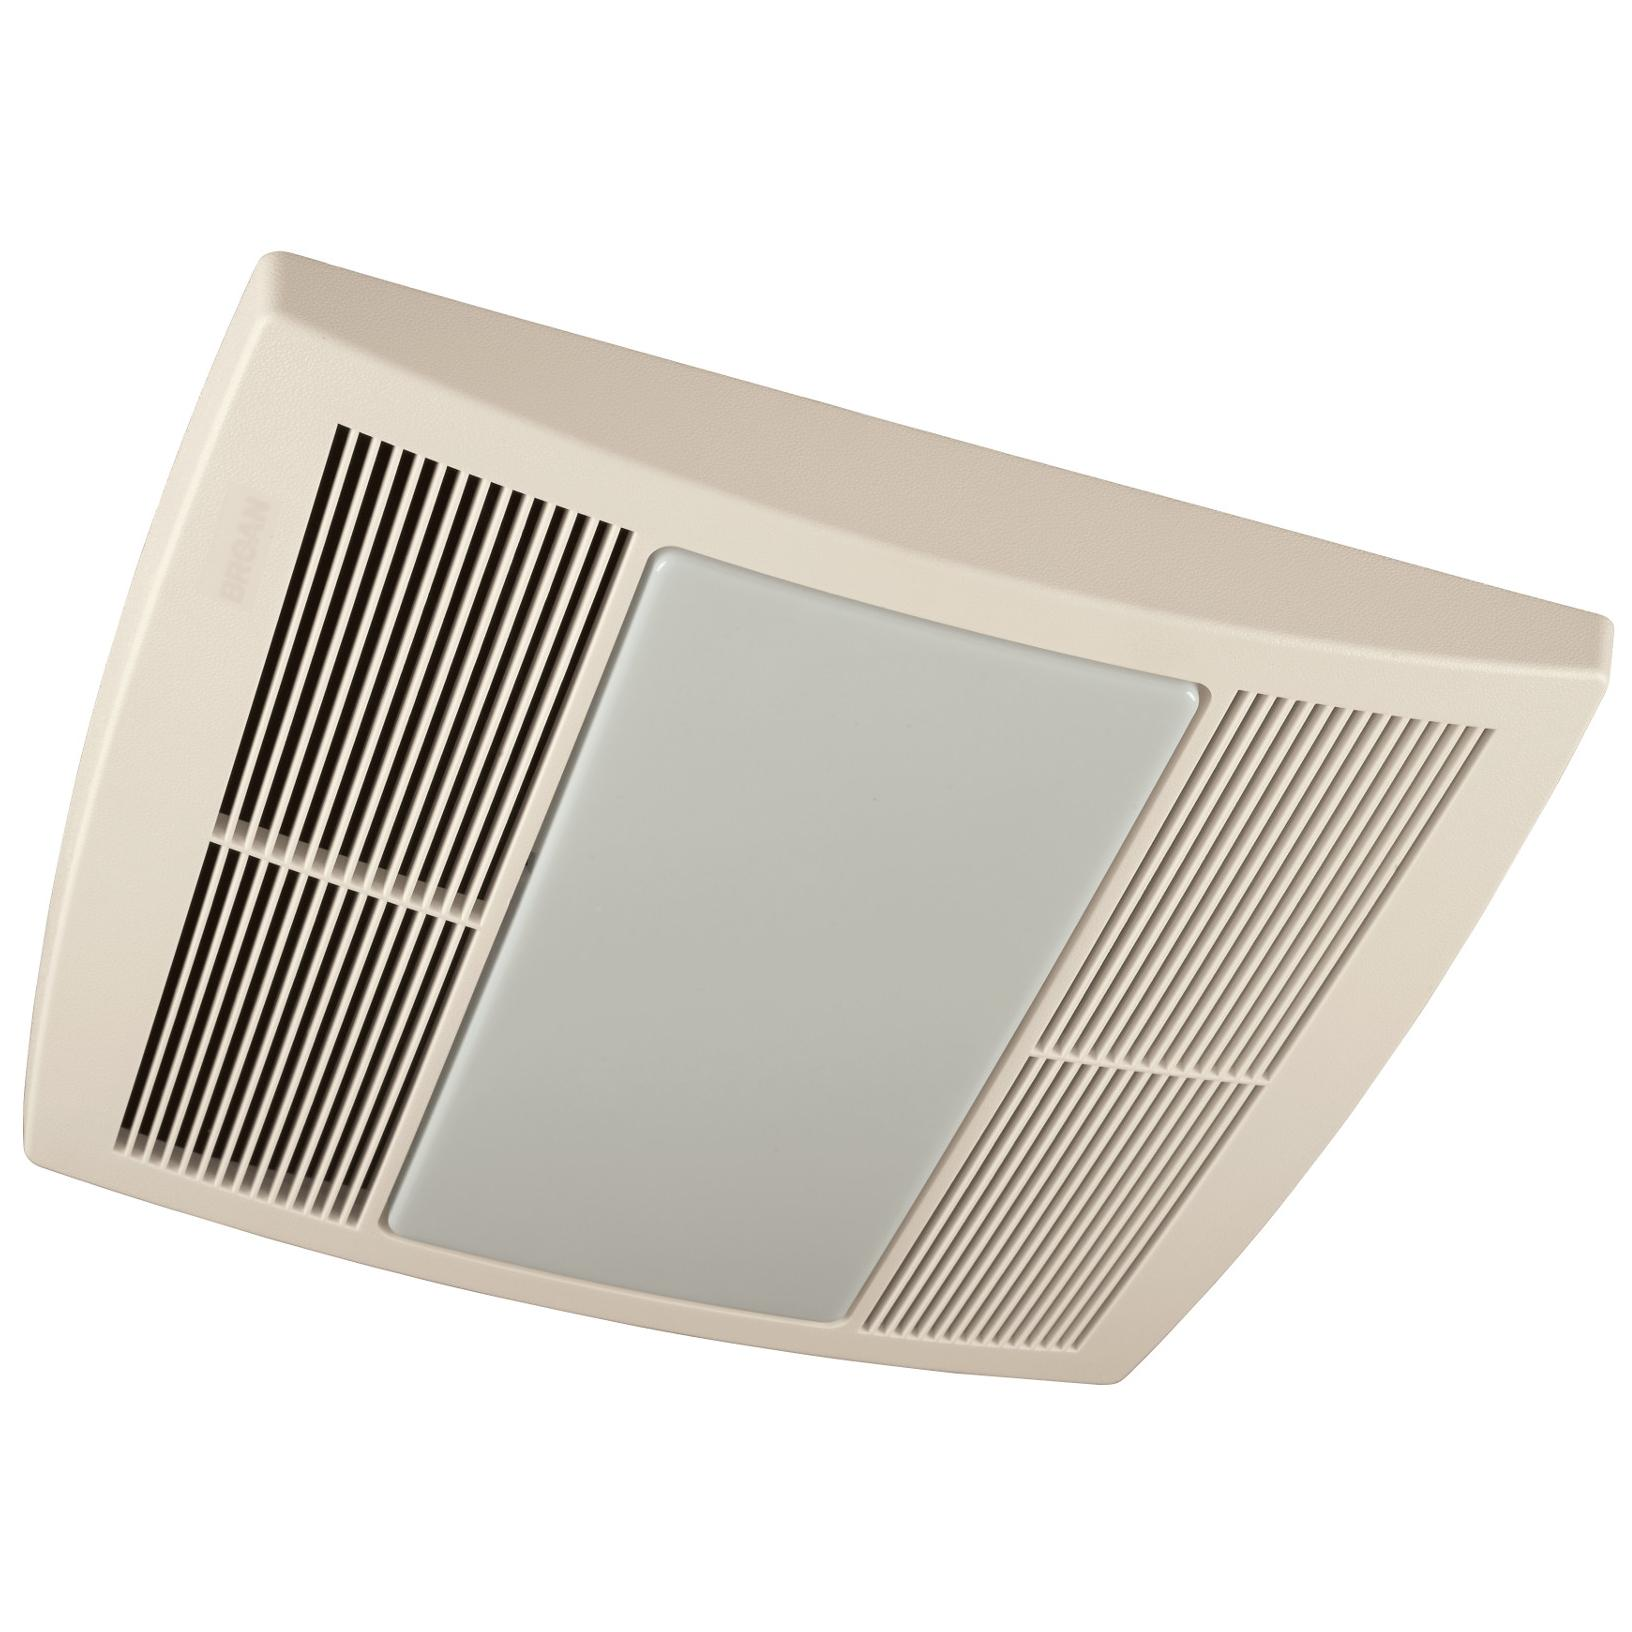 quiet bathroom exhaust fans with light broan qtr110l ultra silent bath fan 110 cfm white grille 25698